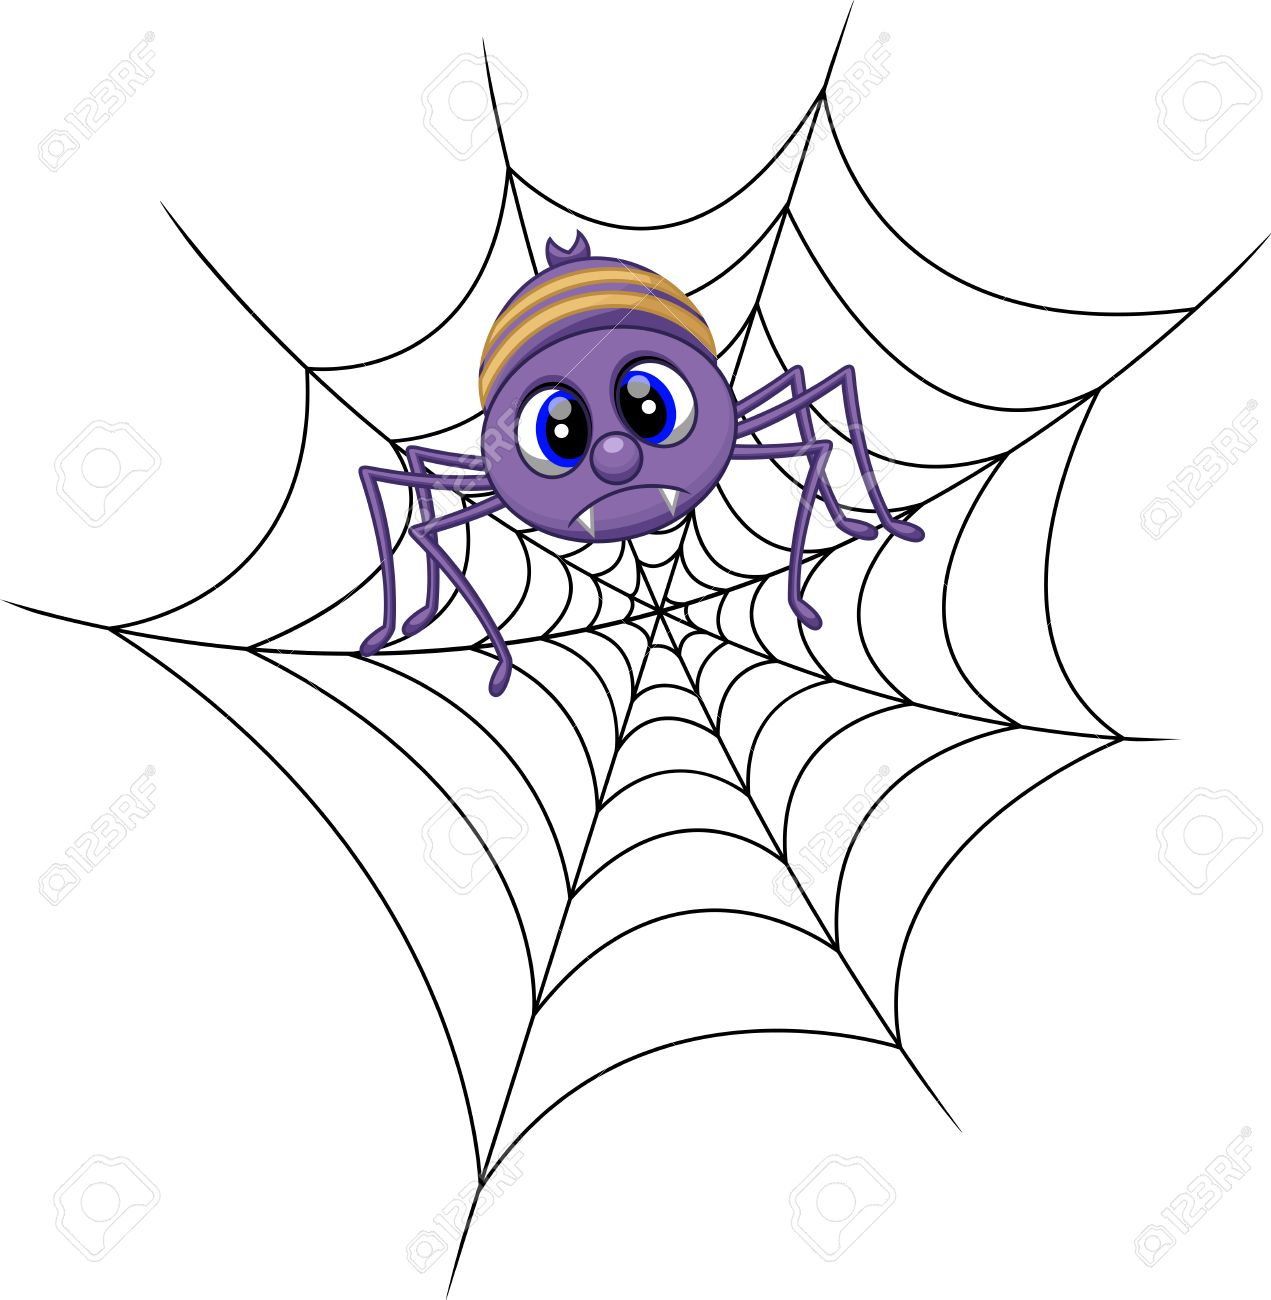 funny spider cartoon royalty free cliparts vectors and stock